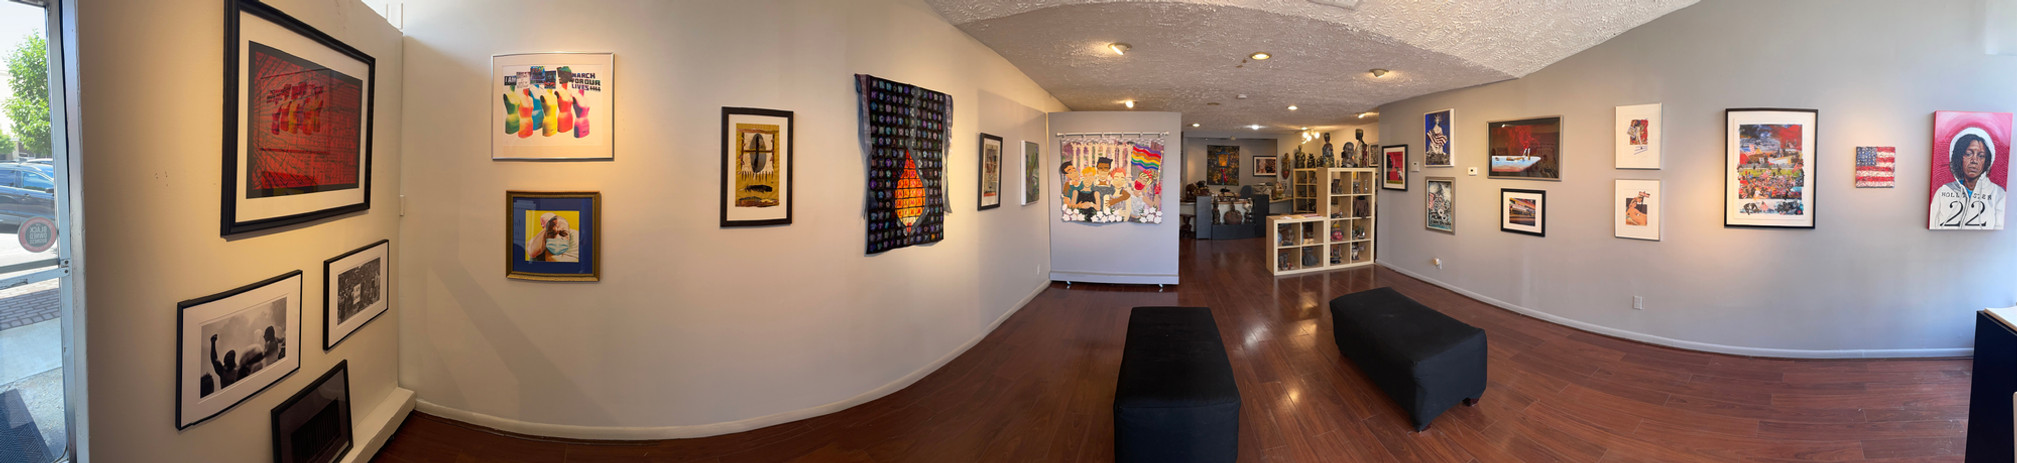 Panoramic Image Of Current Show